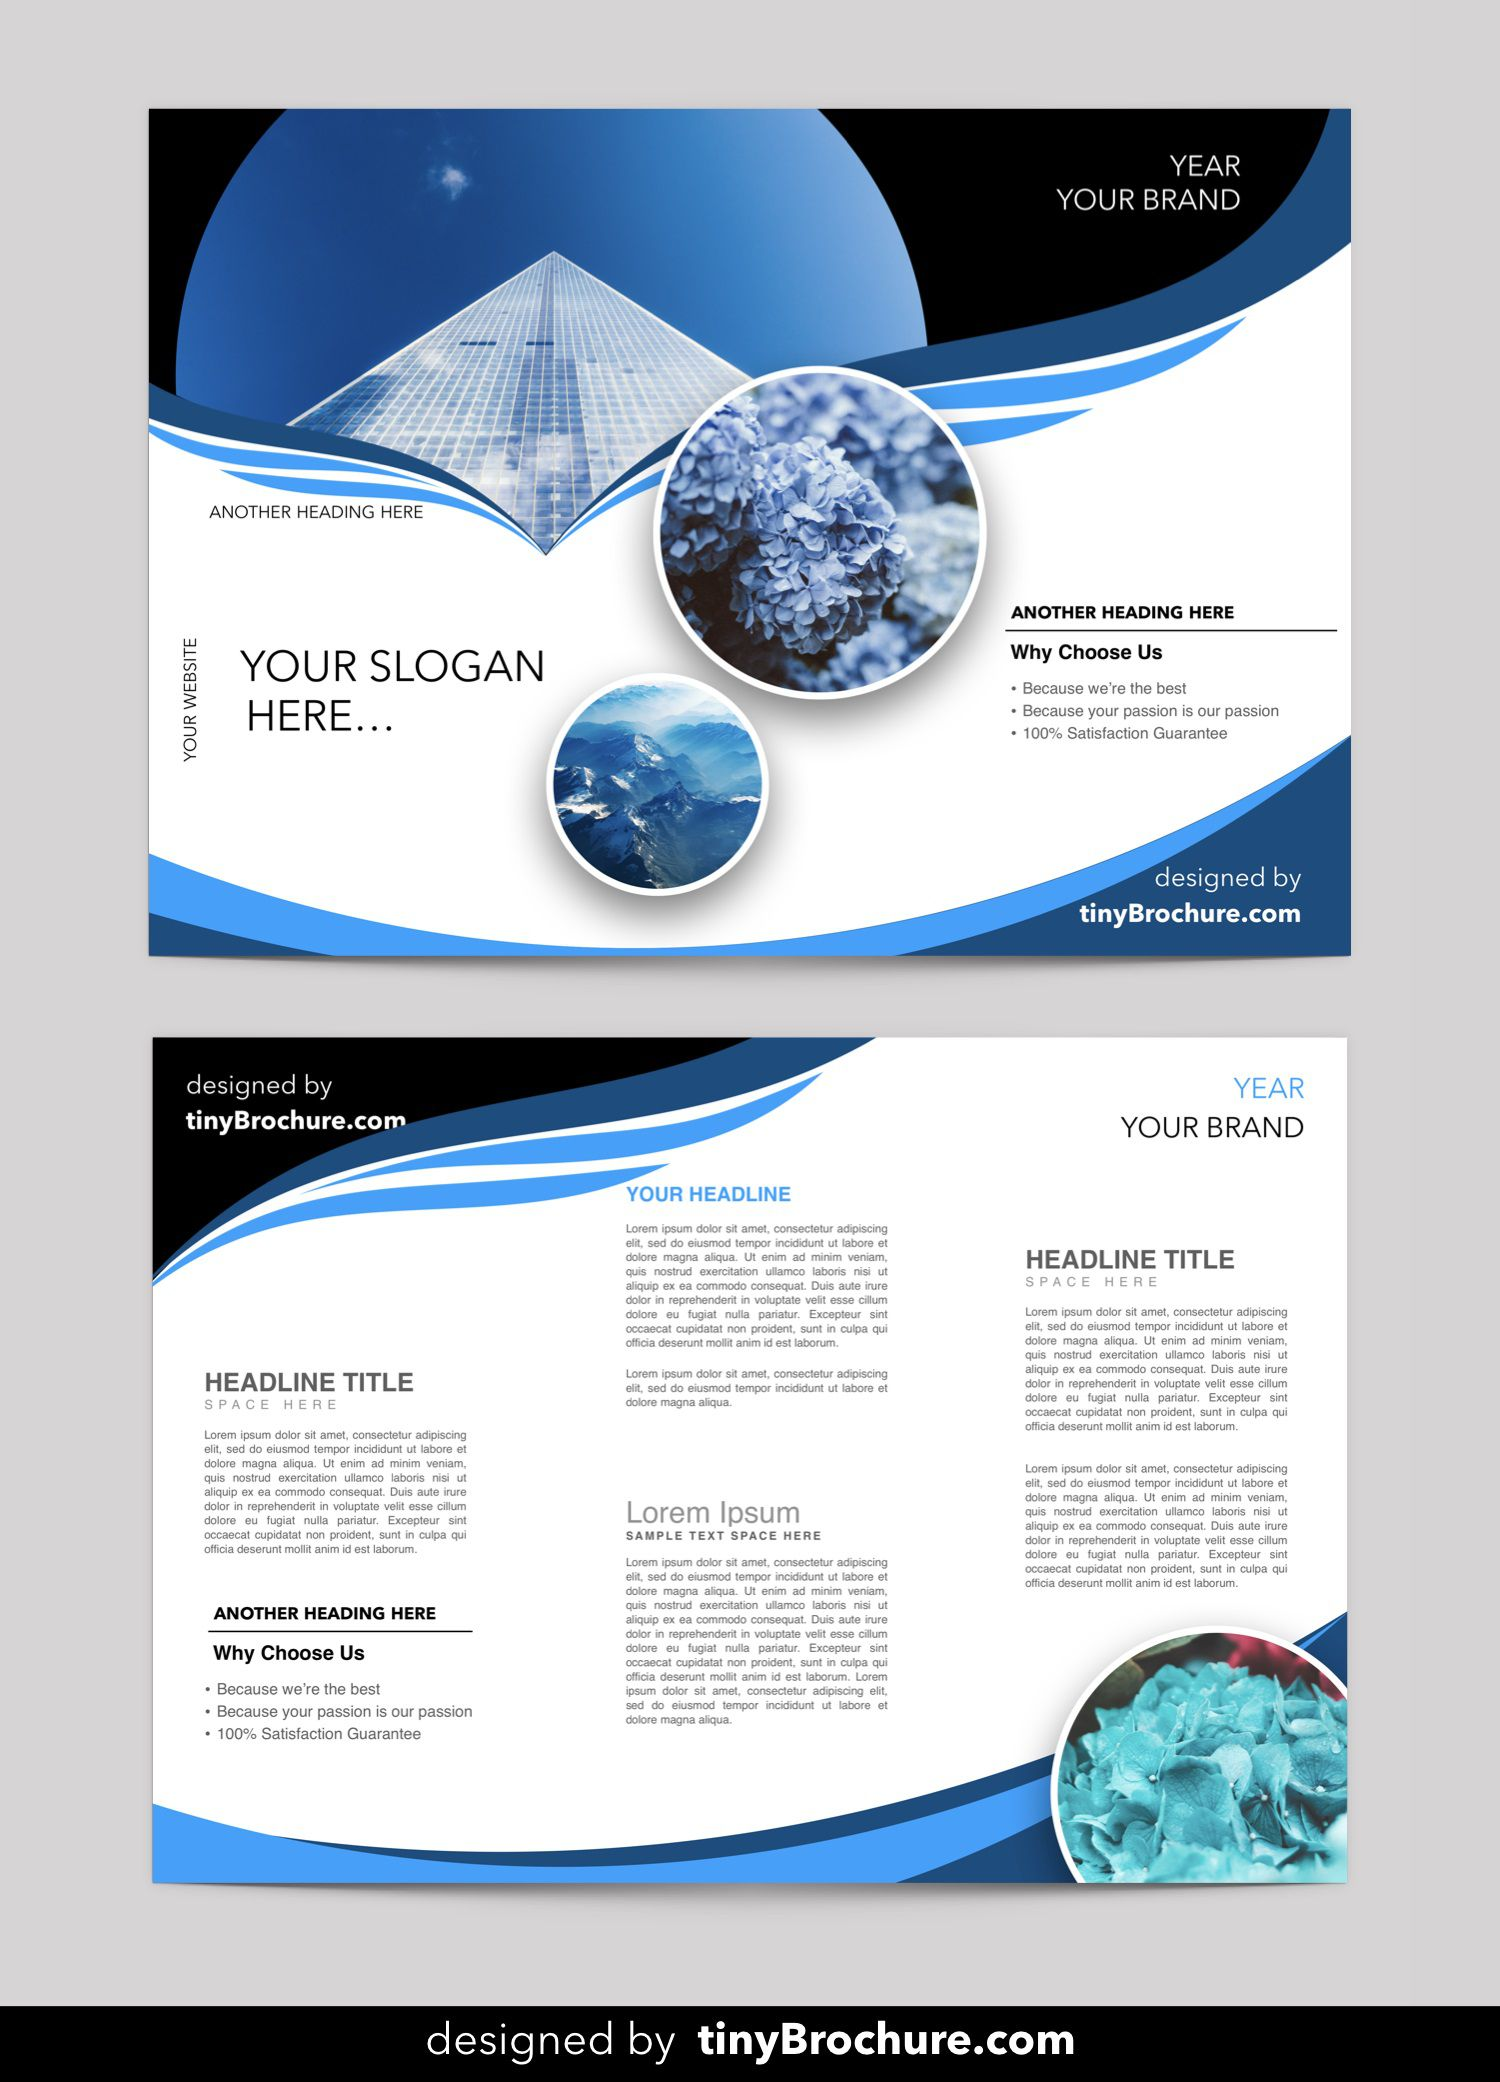 002 Awesome Download Template For Word Image  Wordpres Free Resume 2007 Addres LabelFull